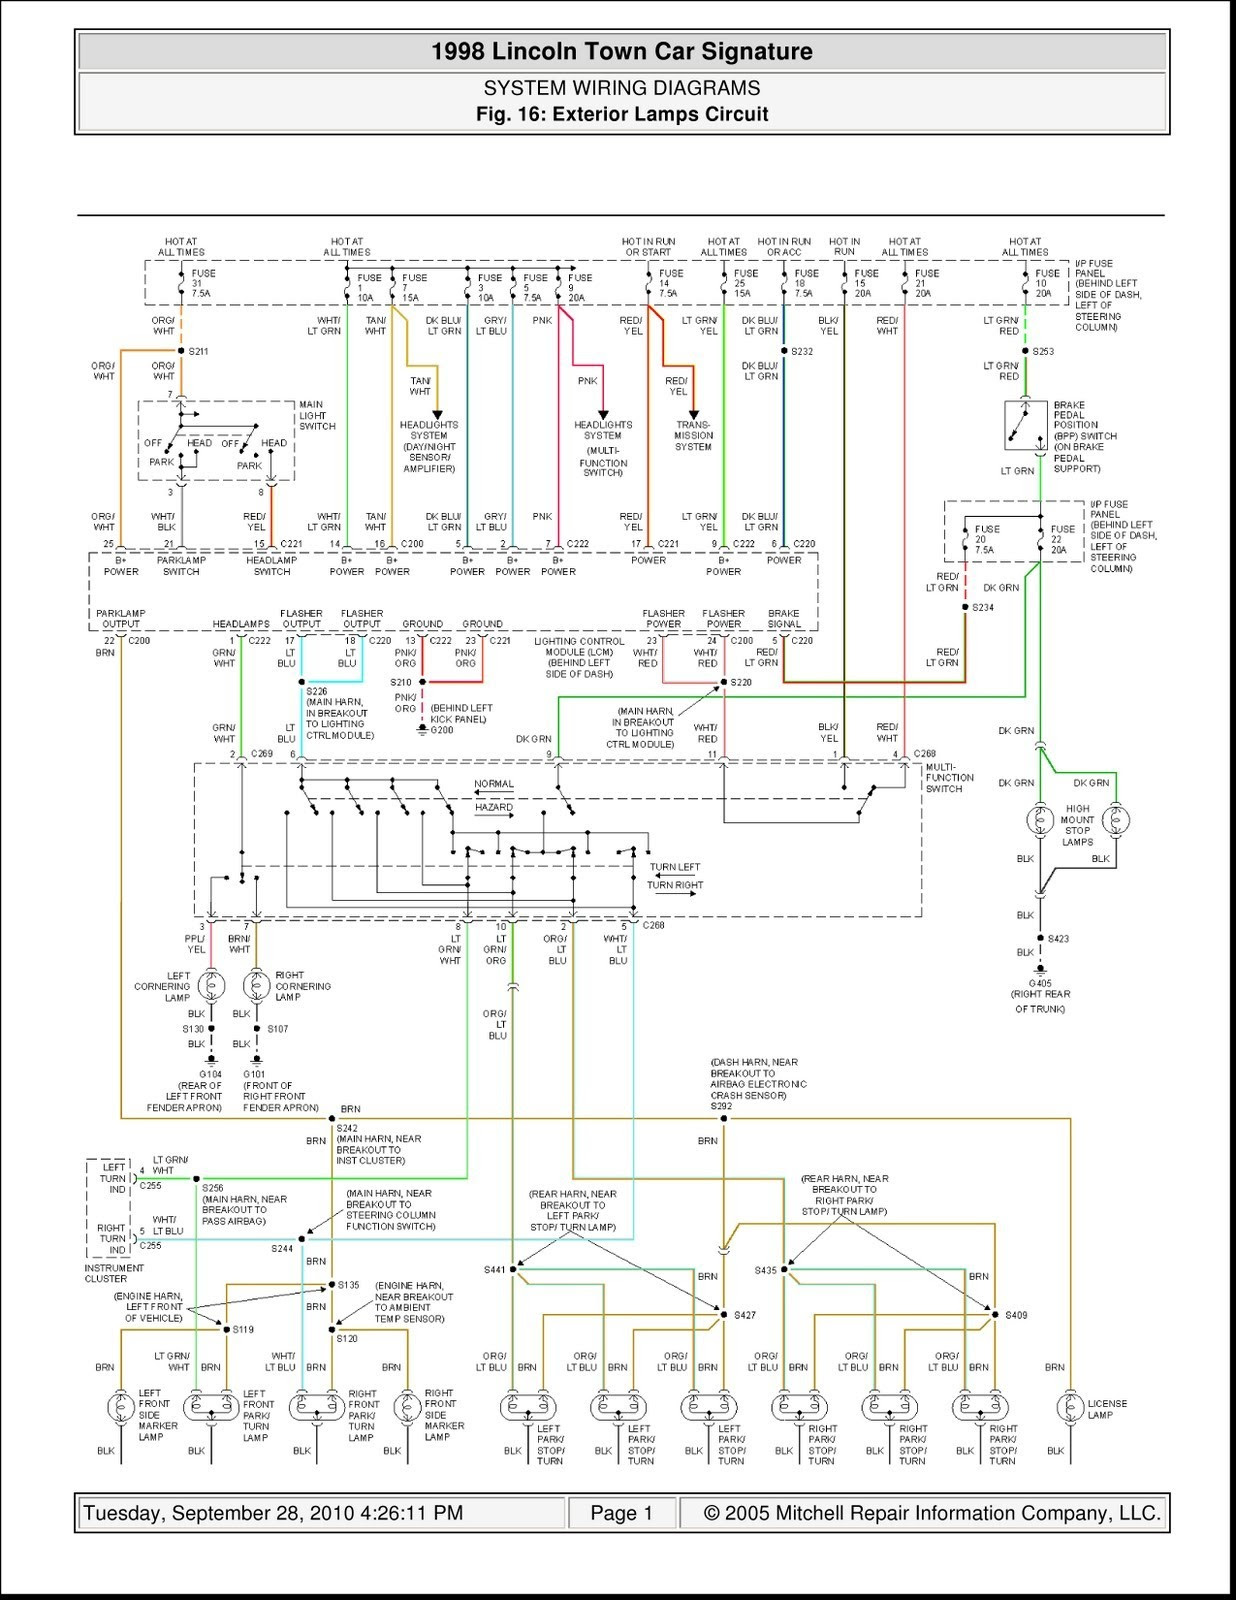 1992 Lincoln Town Car Wiring Diagram